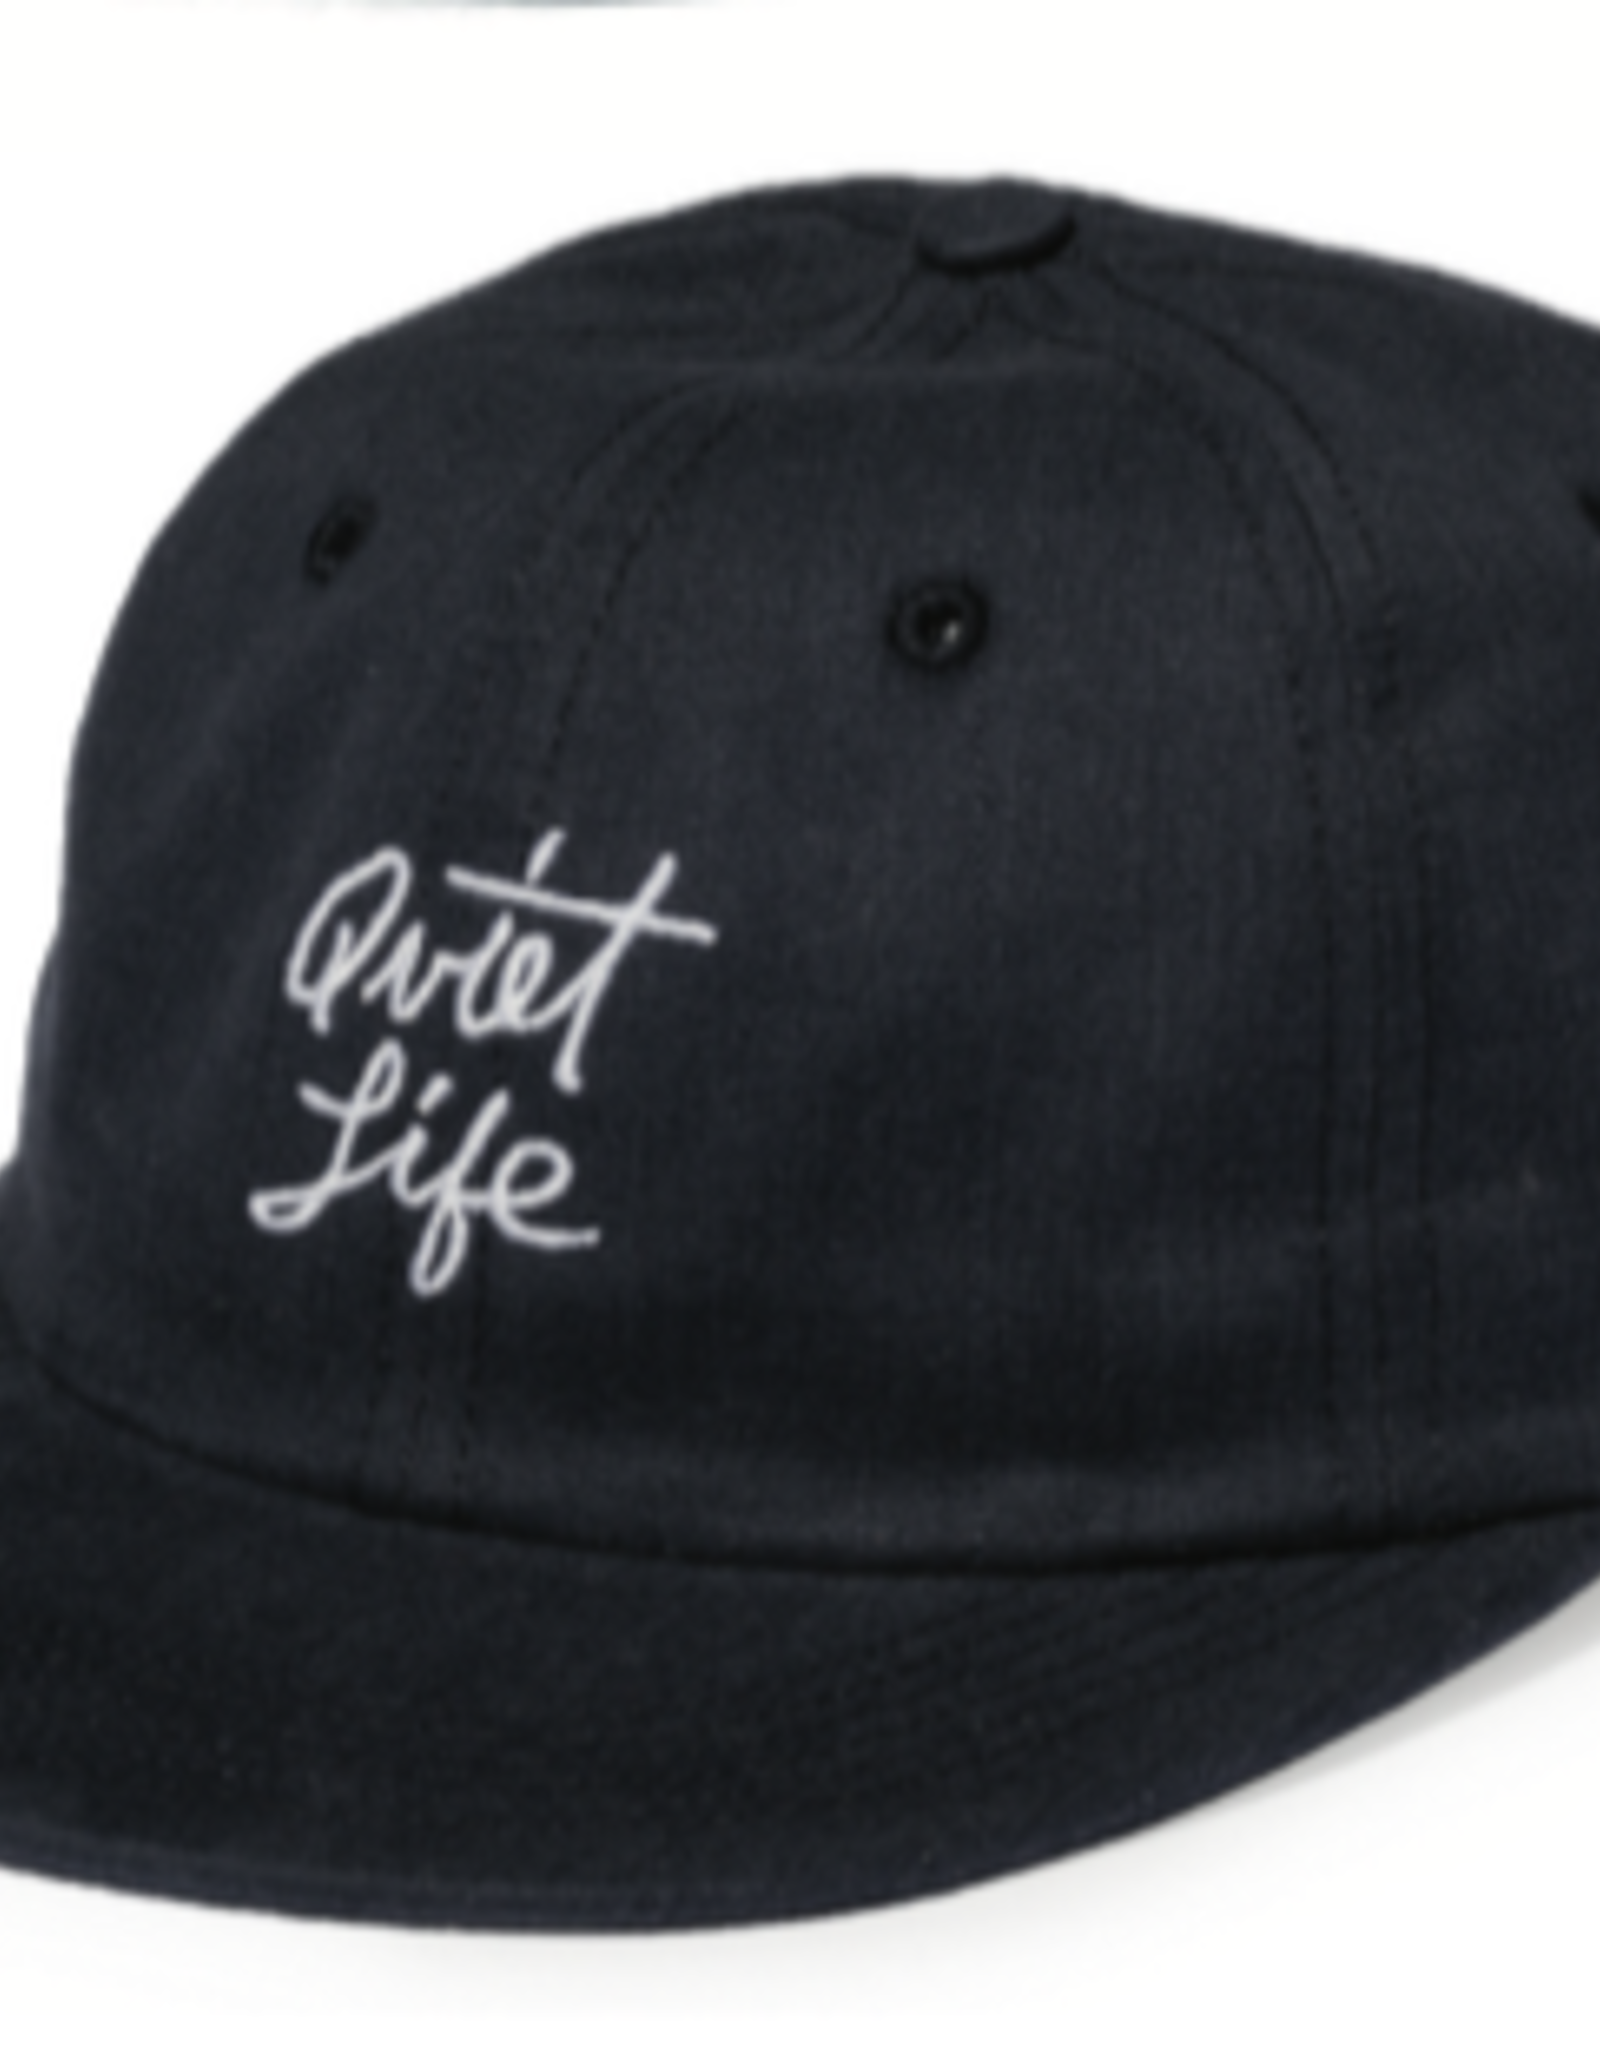 THE QUIET LIFE THE QUIET LIFE SCRIPT POLO BLACK CAP